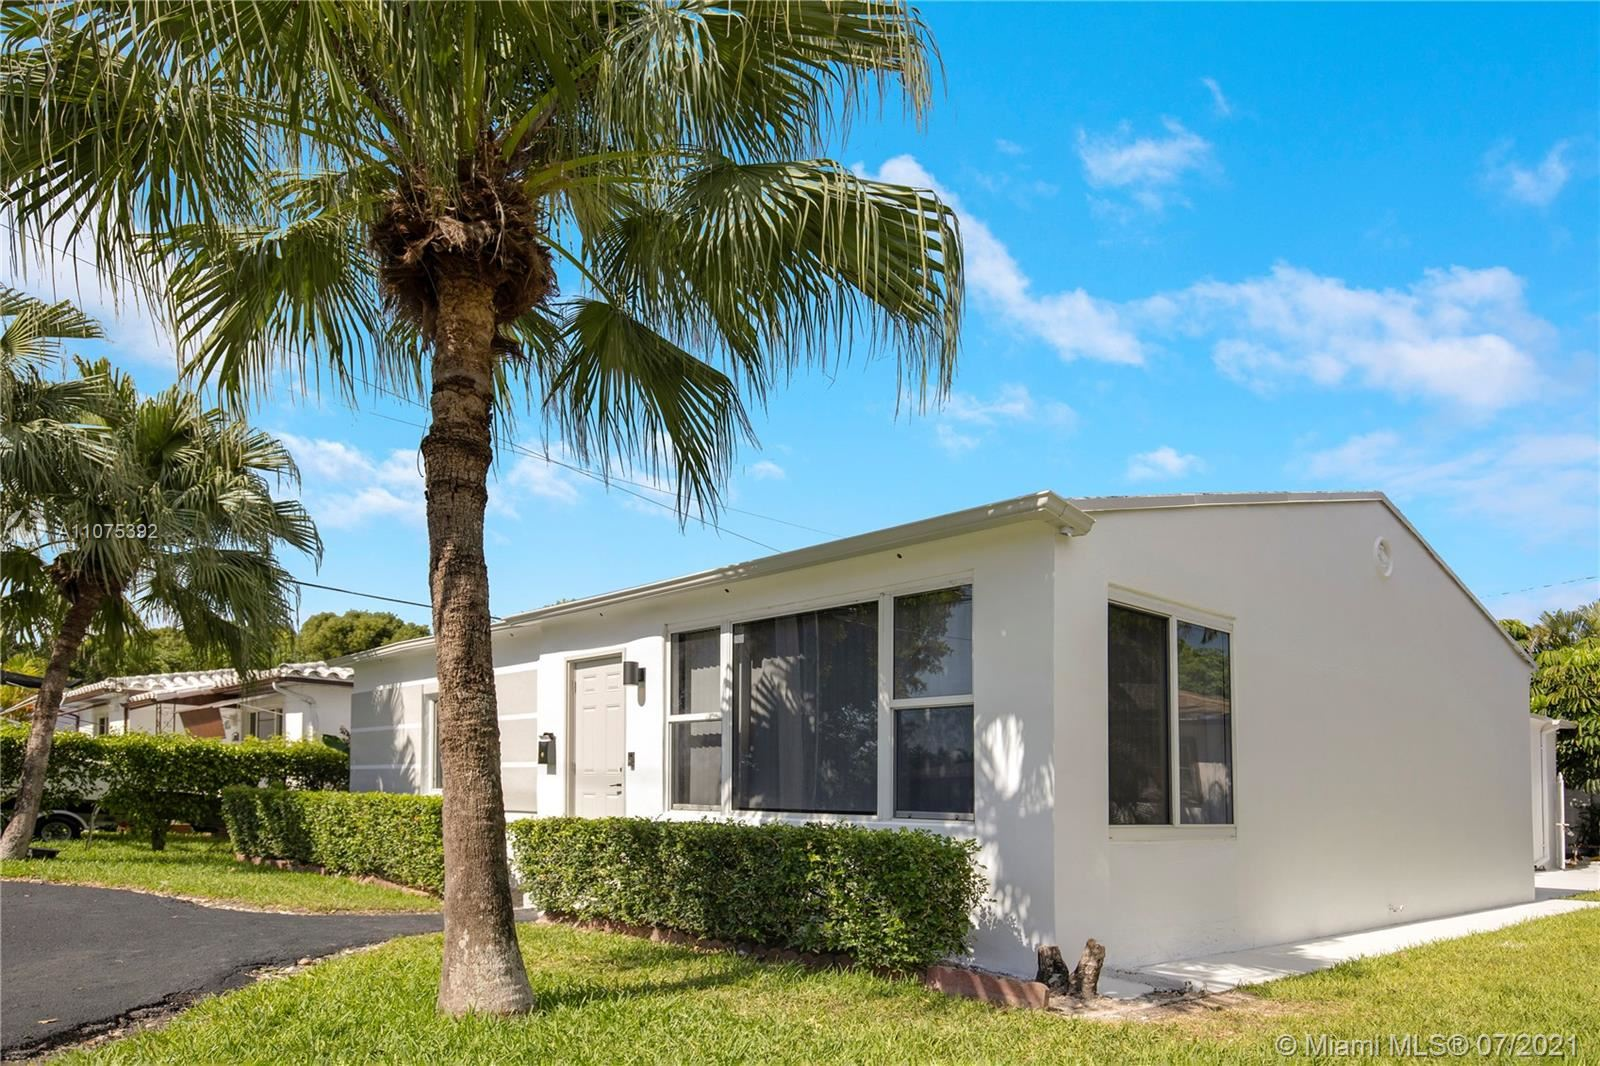 Photo of Hollywood, FL 33020 (MLS # A11075392)